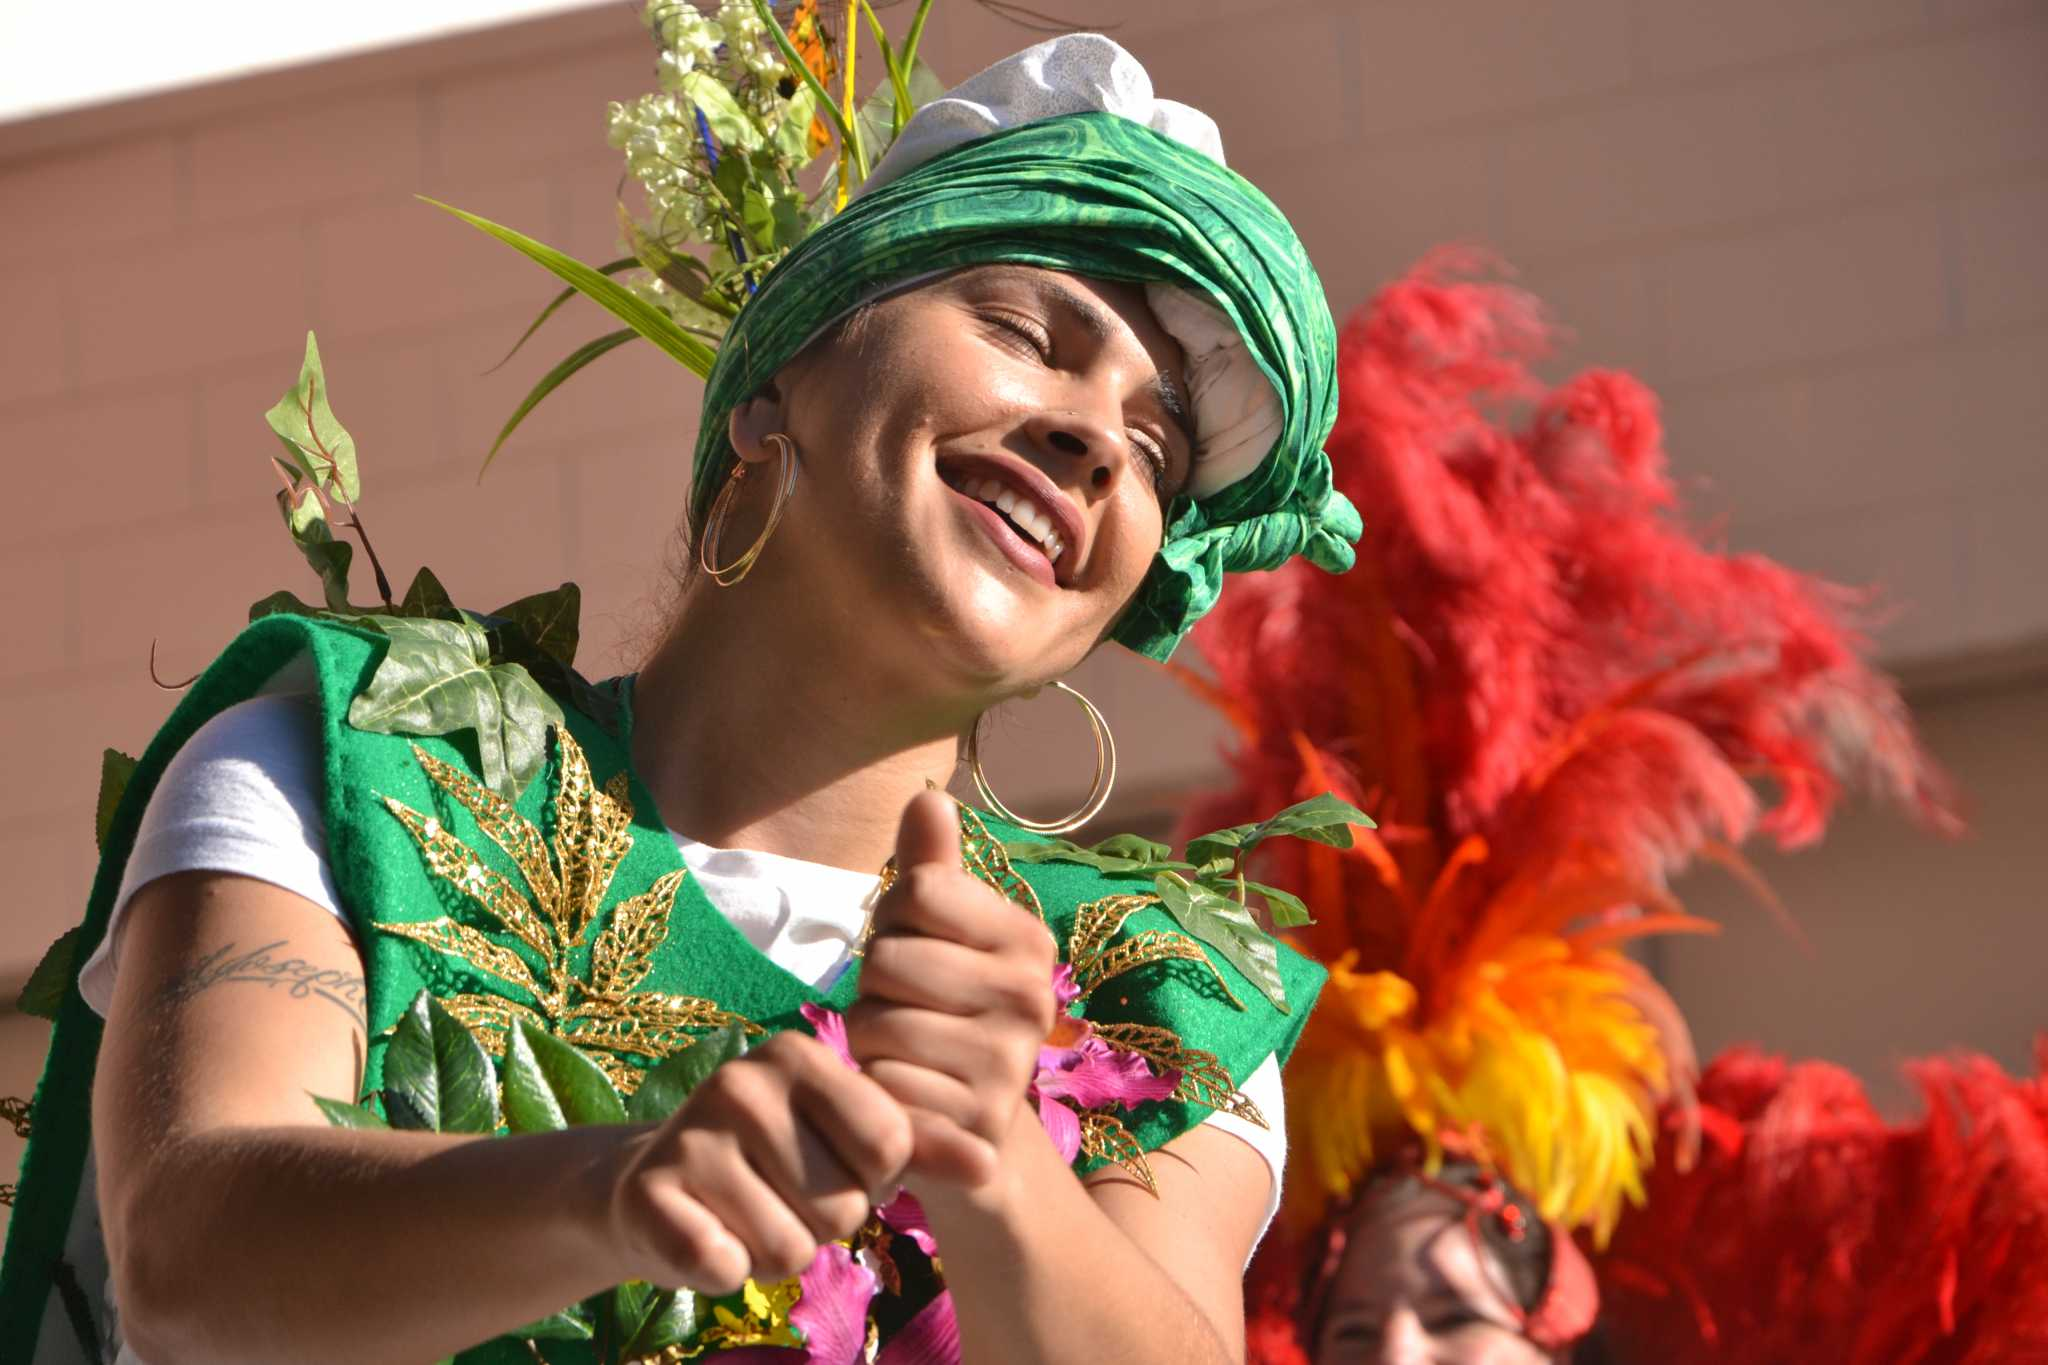 Escola Nova Samba dances at the Calle 24 Fiesta De Las Americas, on Sunday Sept. 17, 2017. (Golden Gate Xpress/Cristabell FIerros)